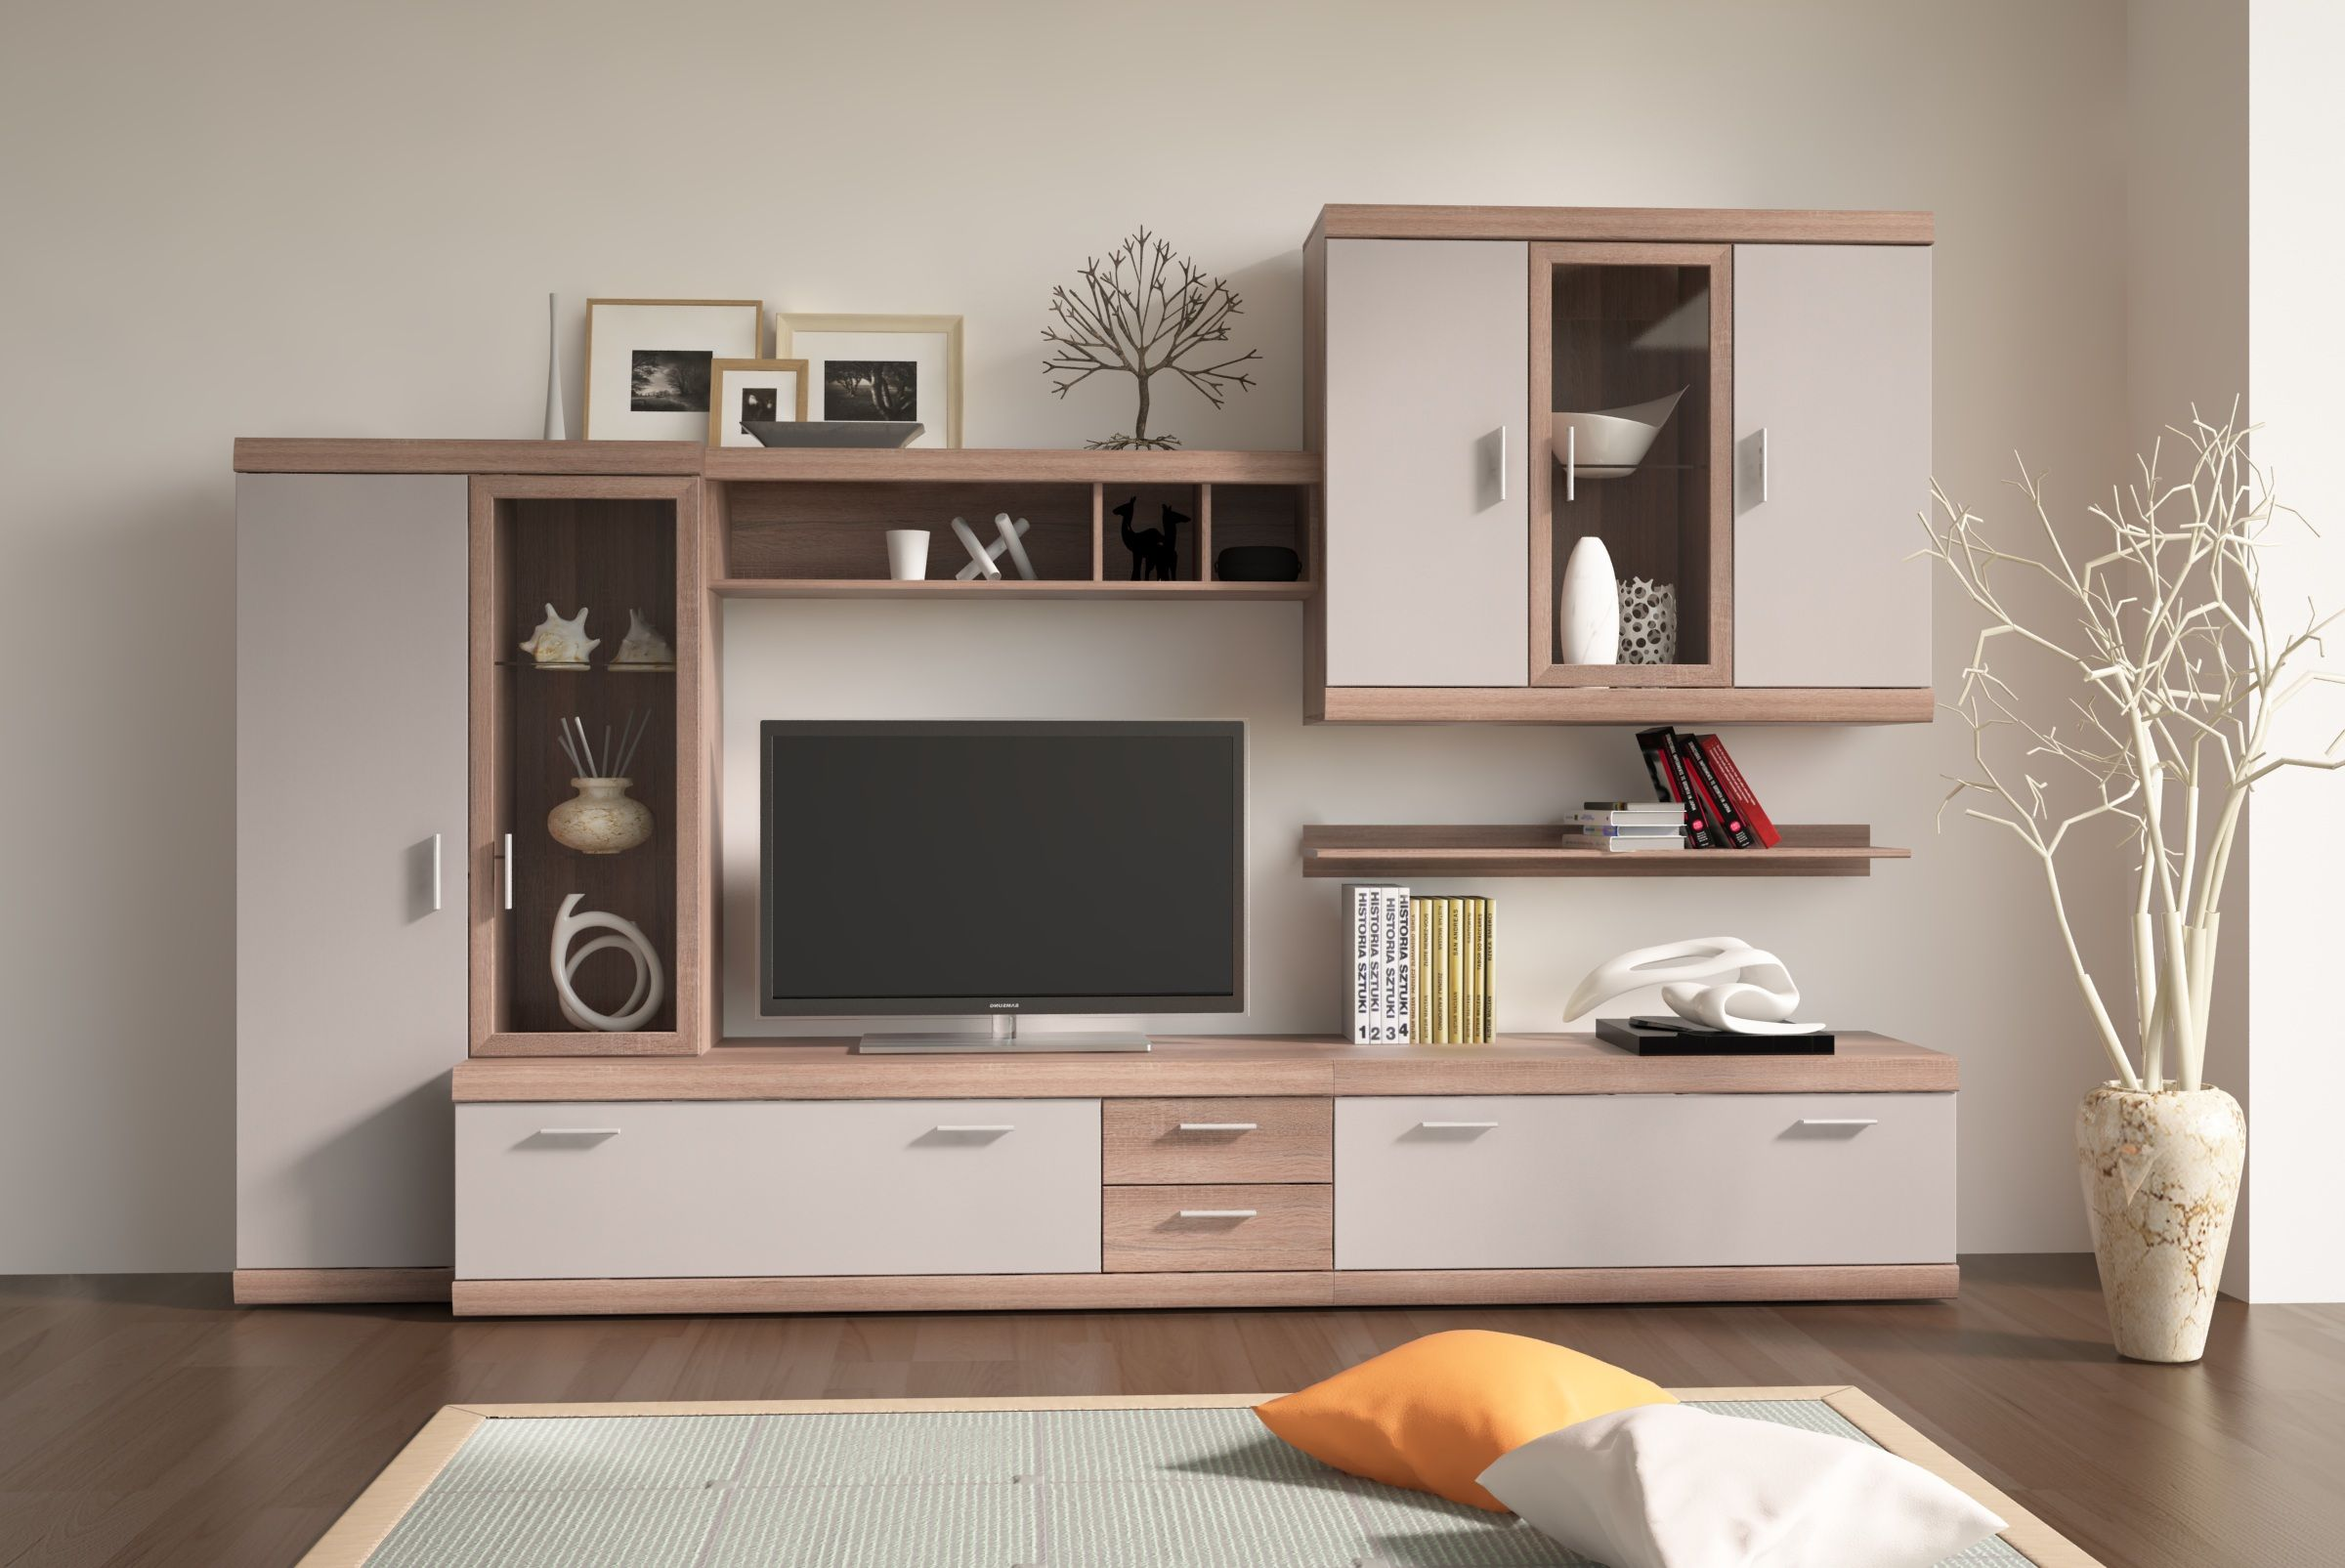 Imperial 19  Living room tv unit designs, Modern wall units